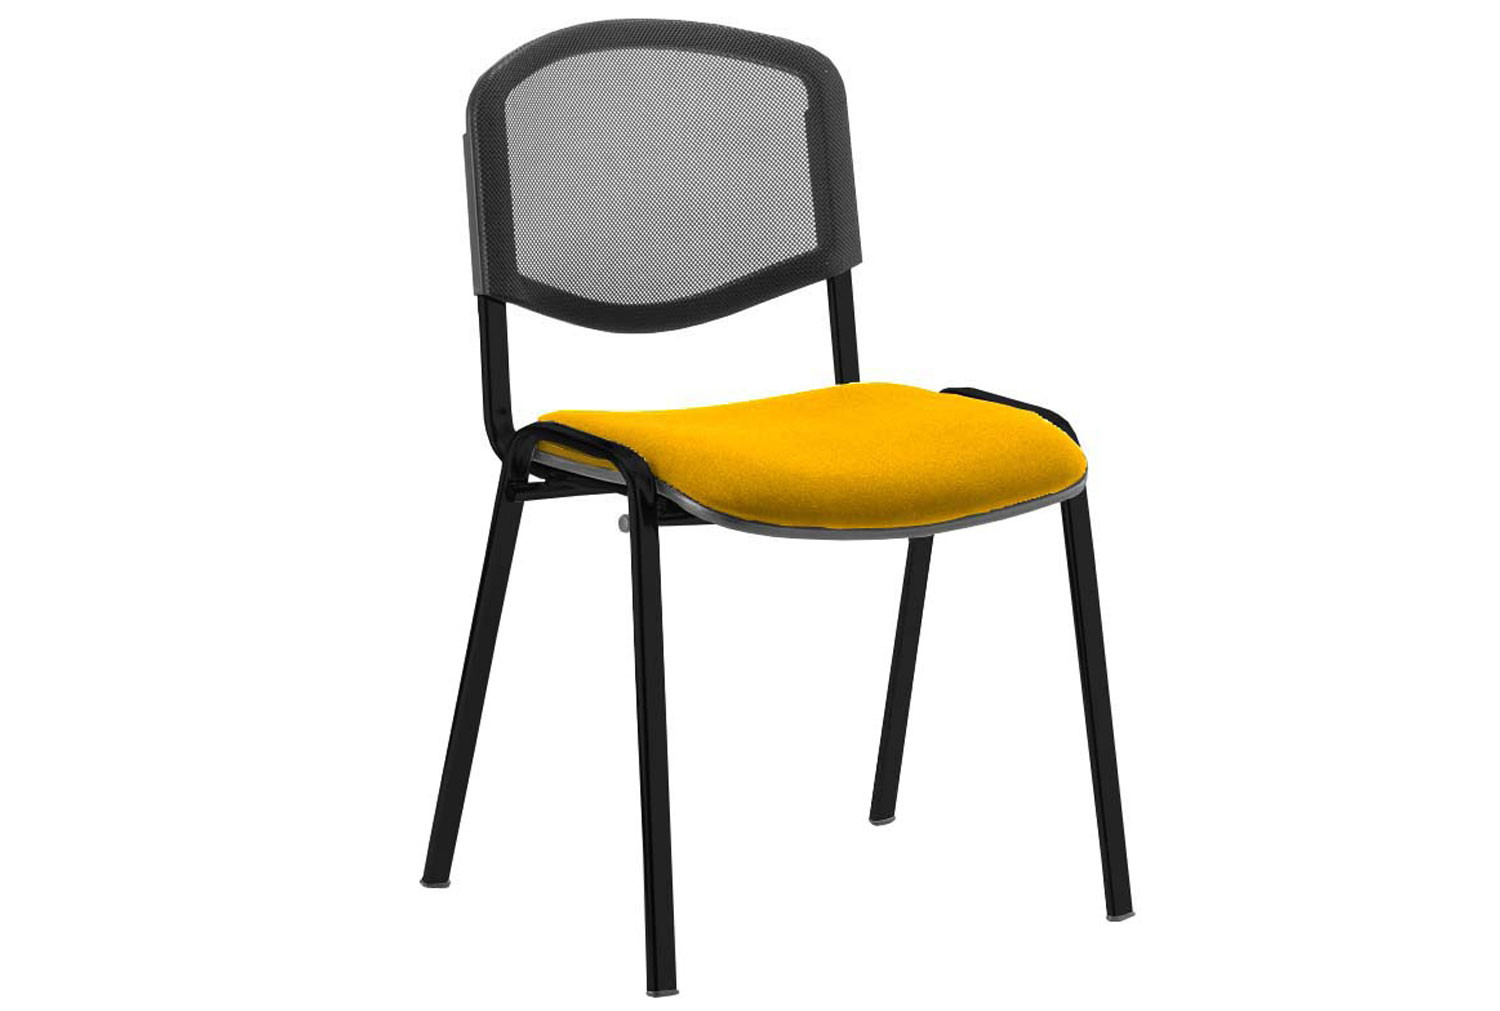 ISO Black Frame Mesh Back Conference Chair (Senna Yellow)